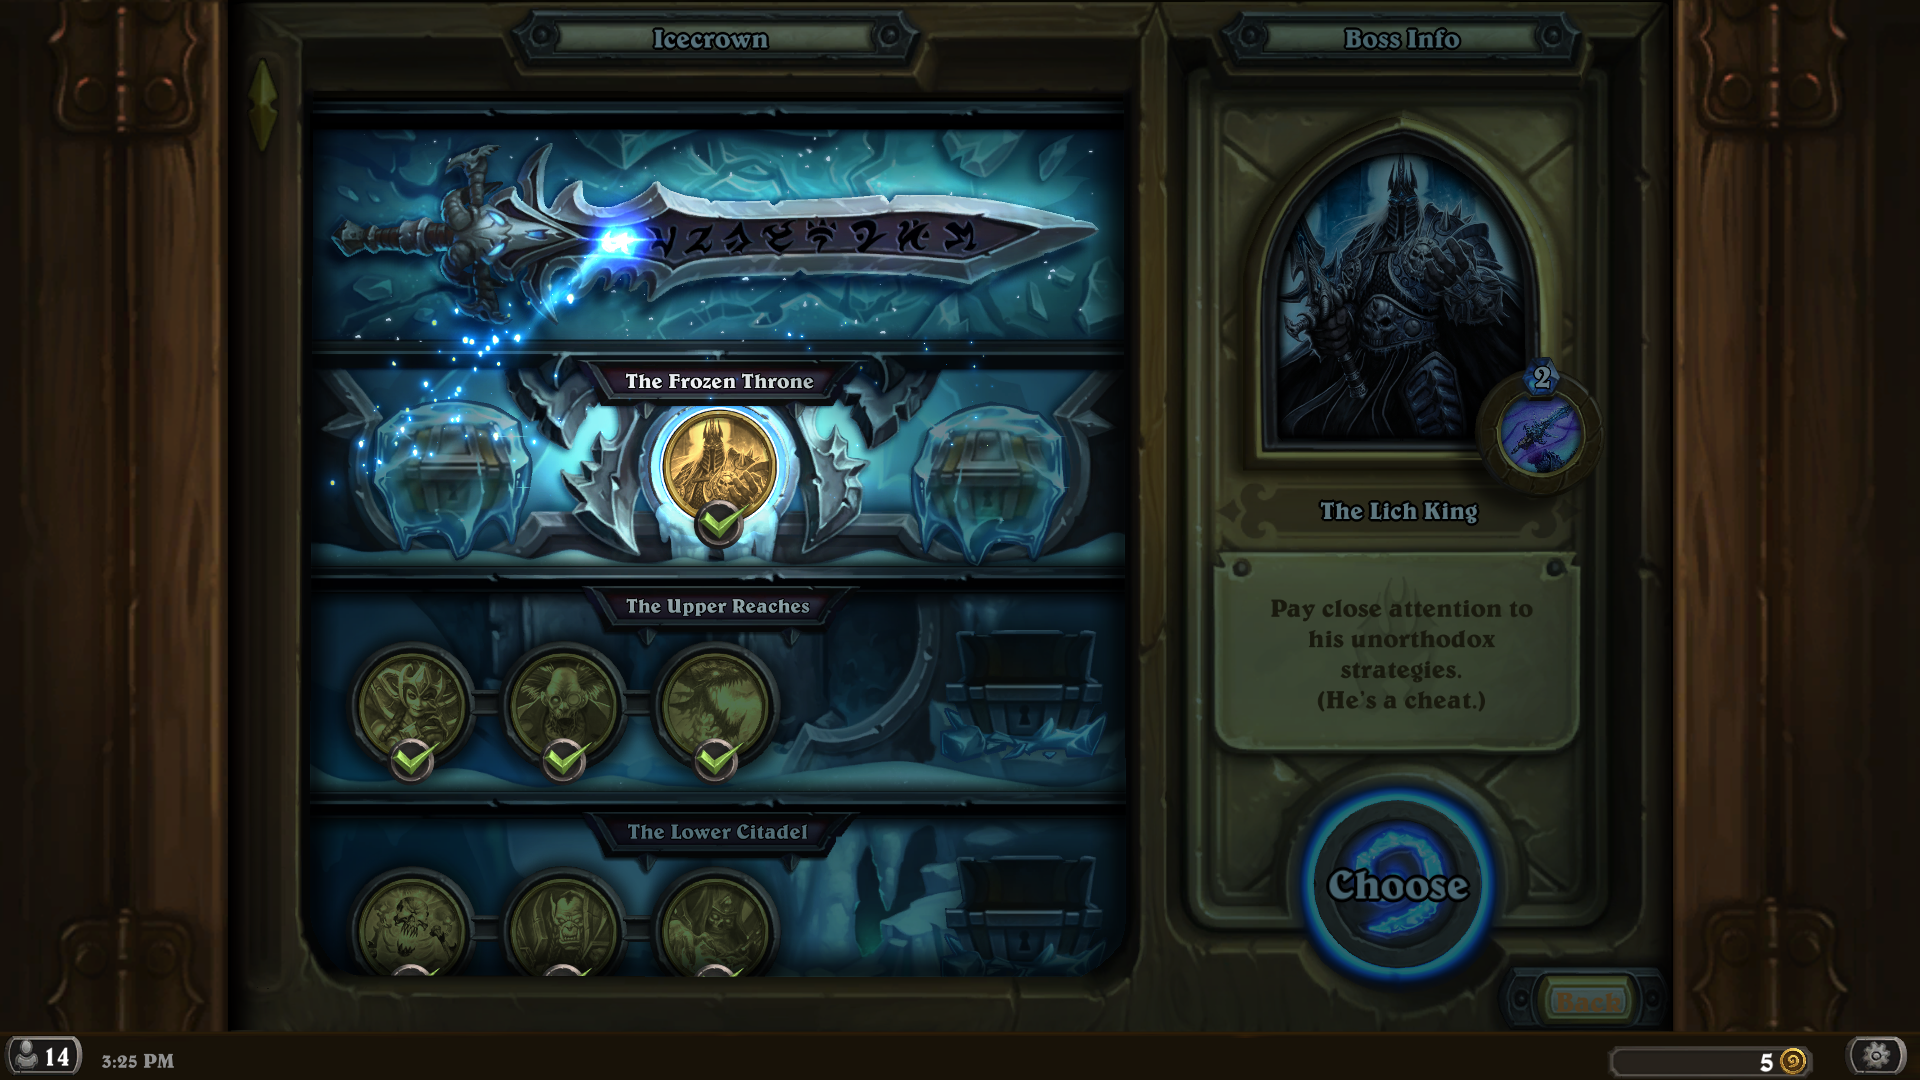 hearthstone-screenshot-08-24-17-15-25-56.png